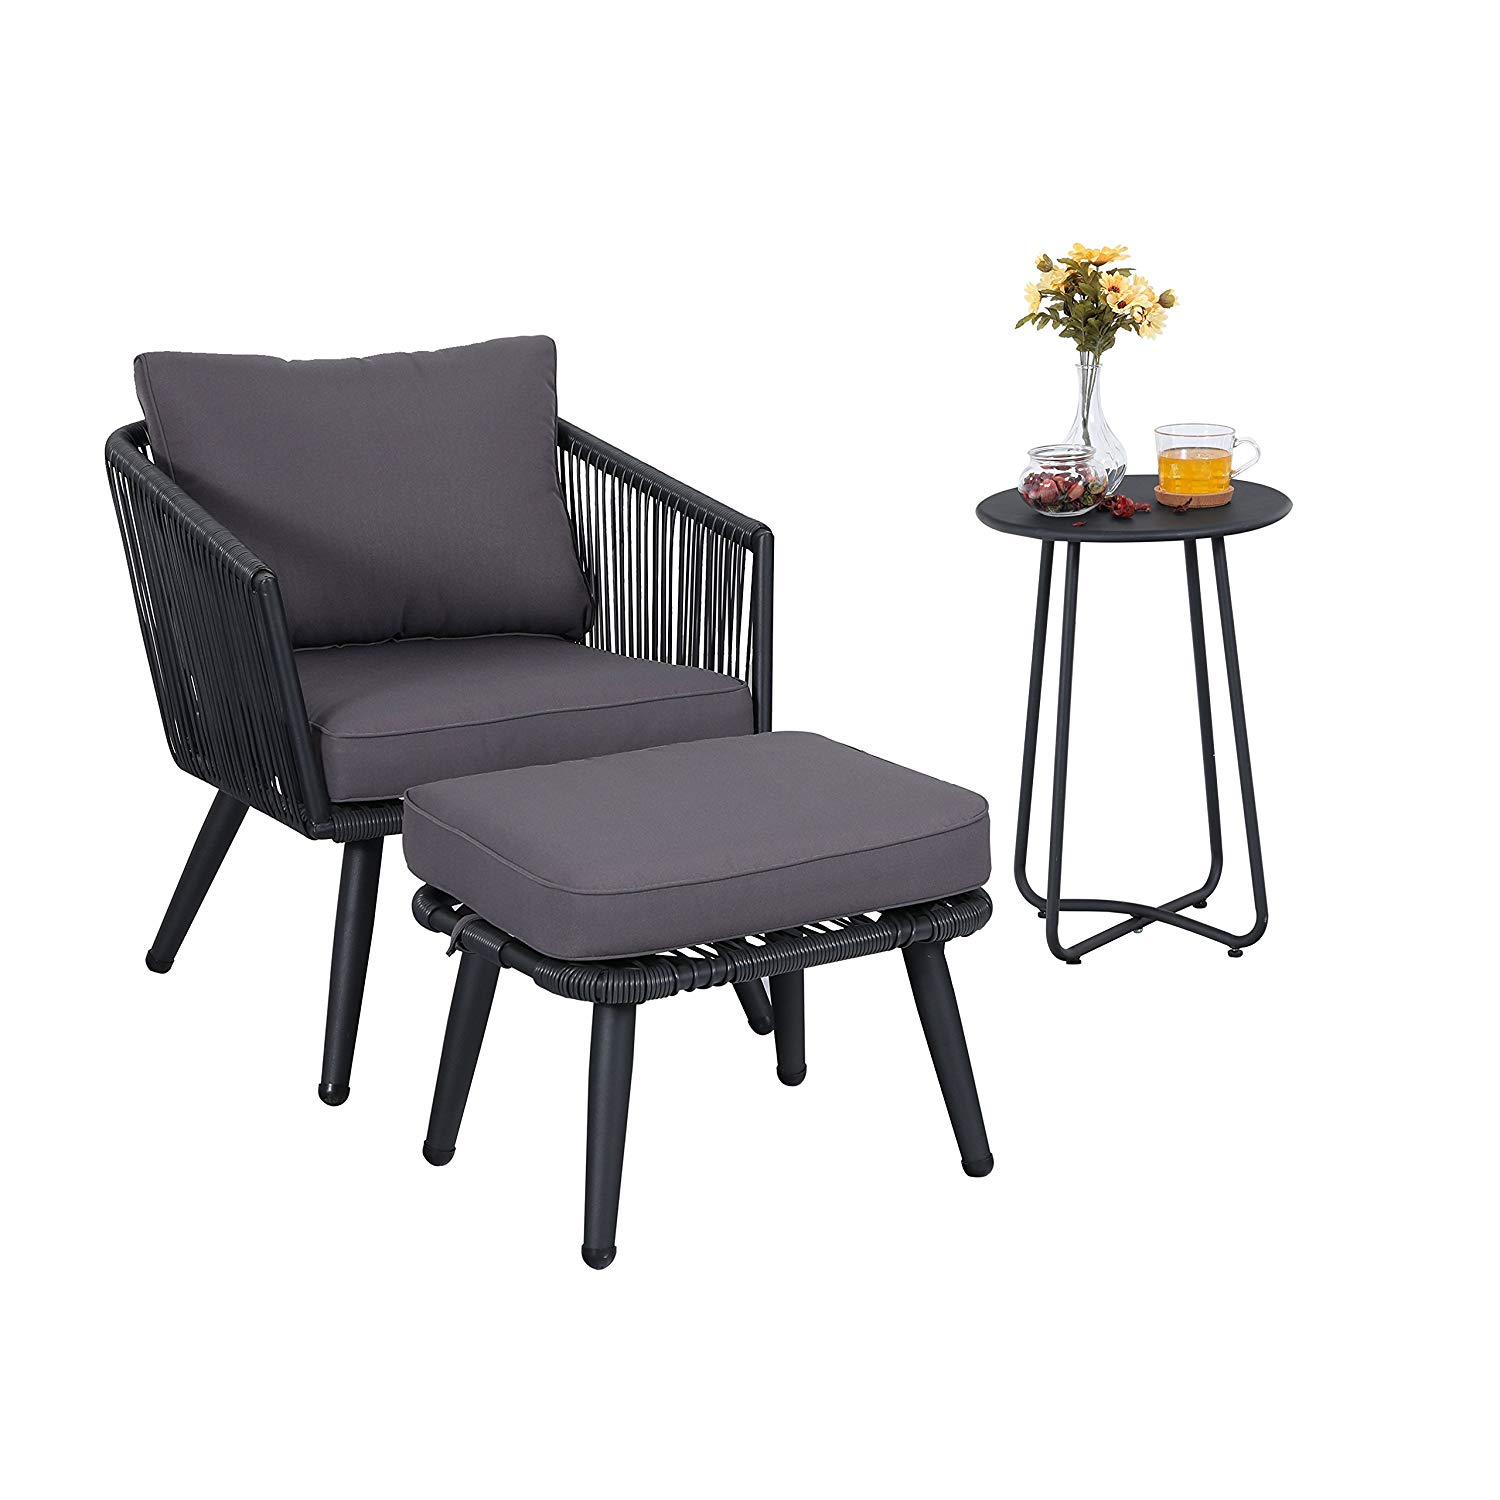 Get quotations · phi villa 3 piece rattan patio furniture set grey